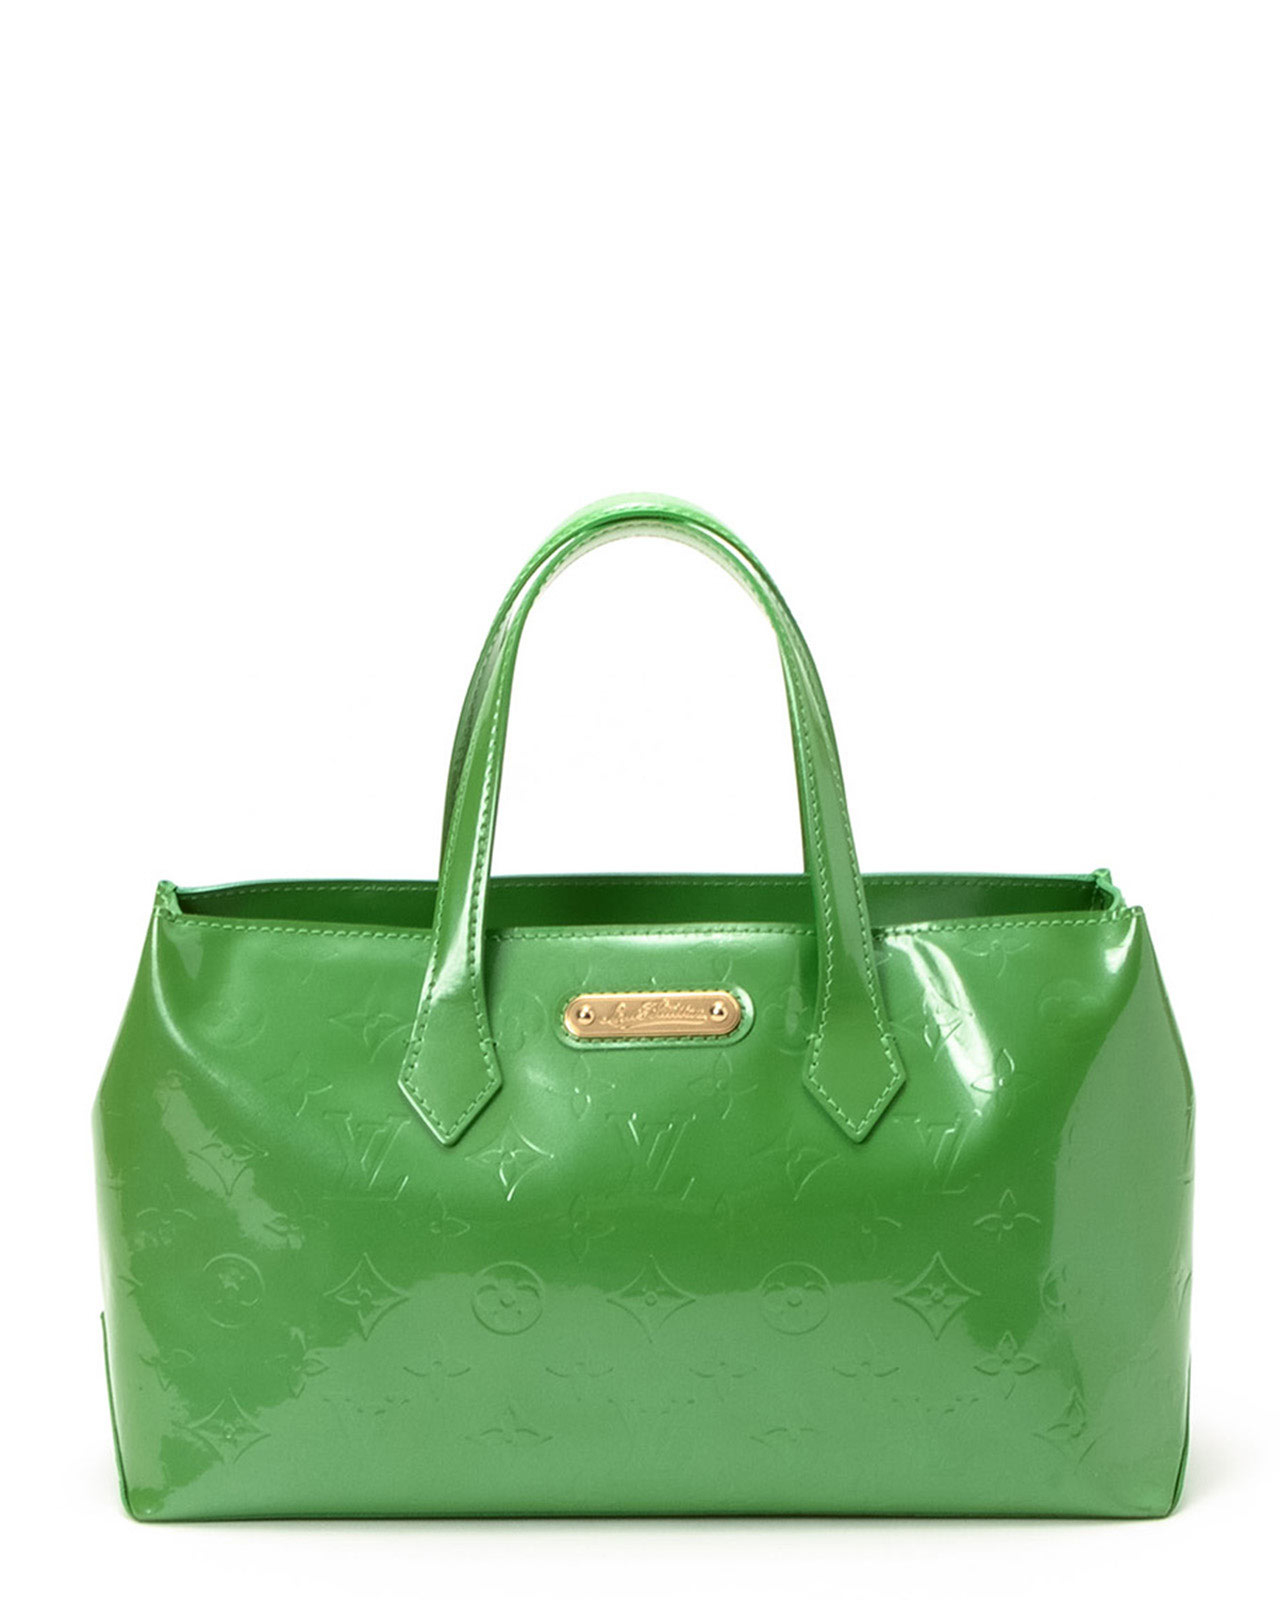 Louis vuitton Bright Green Vernis Wilshire Pm Handbag in Green | Lyst